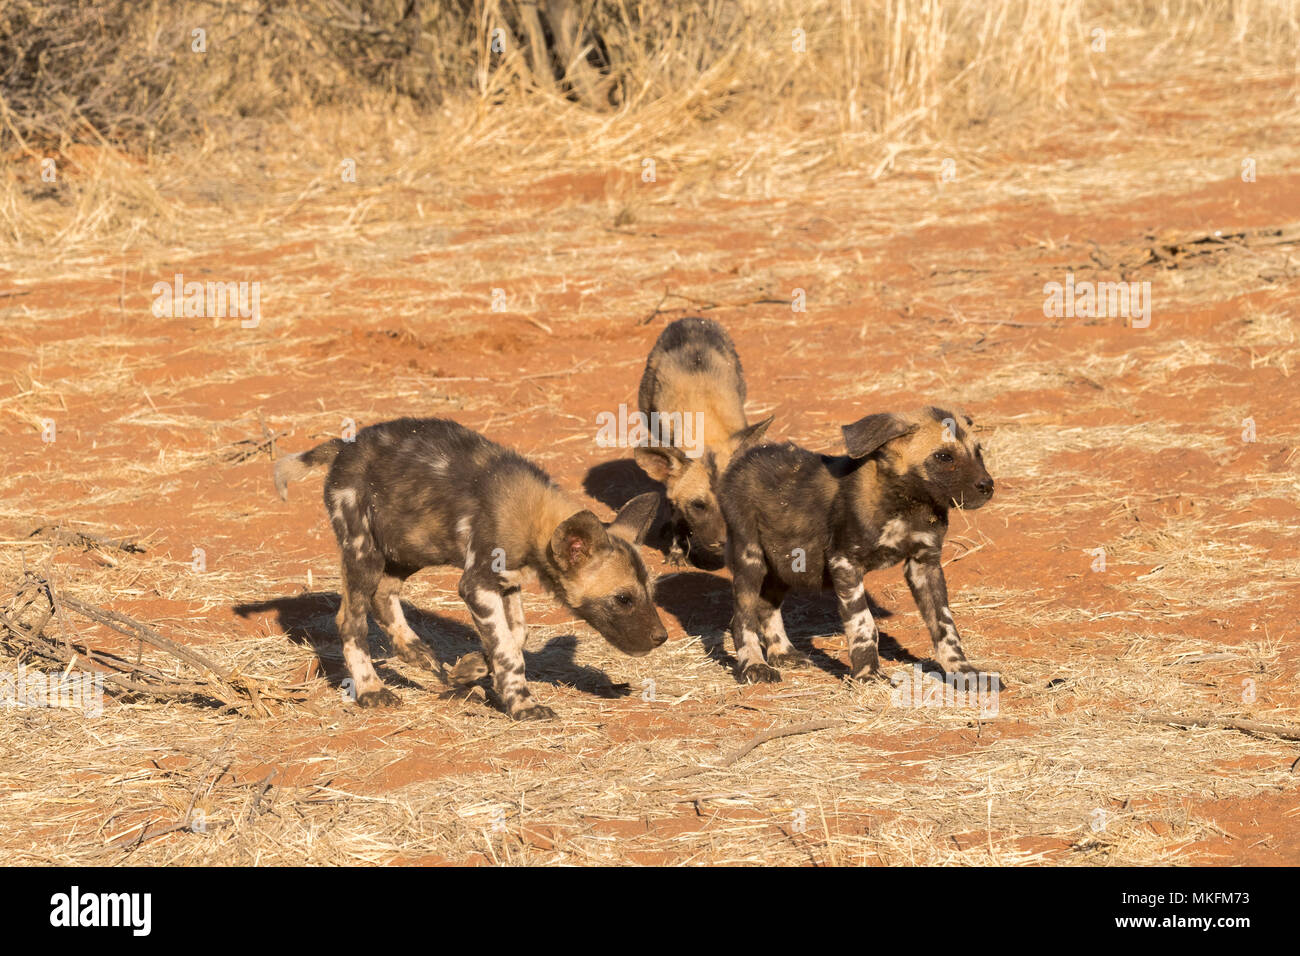 African wild dog or African hunting dog or African painted dog (Lycaon pictus), youngs, Kalahari Desert, South African Republic - Stock Image